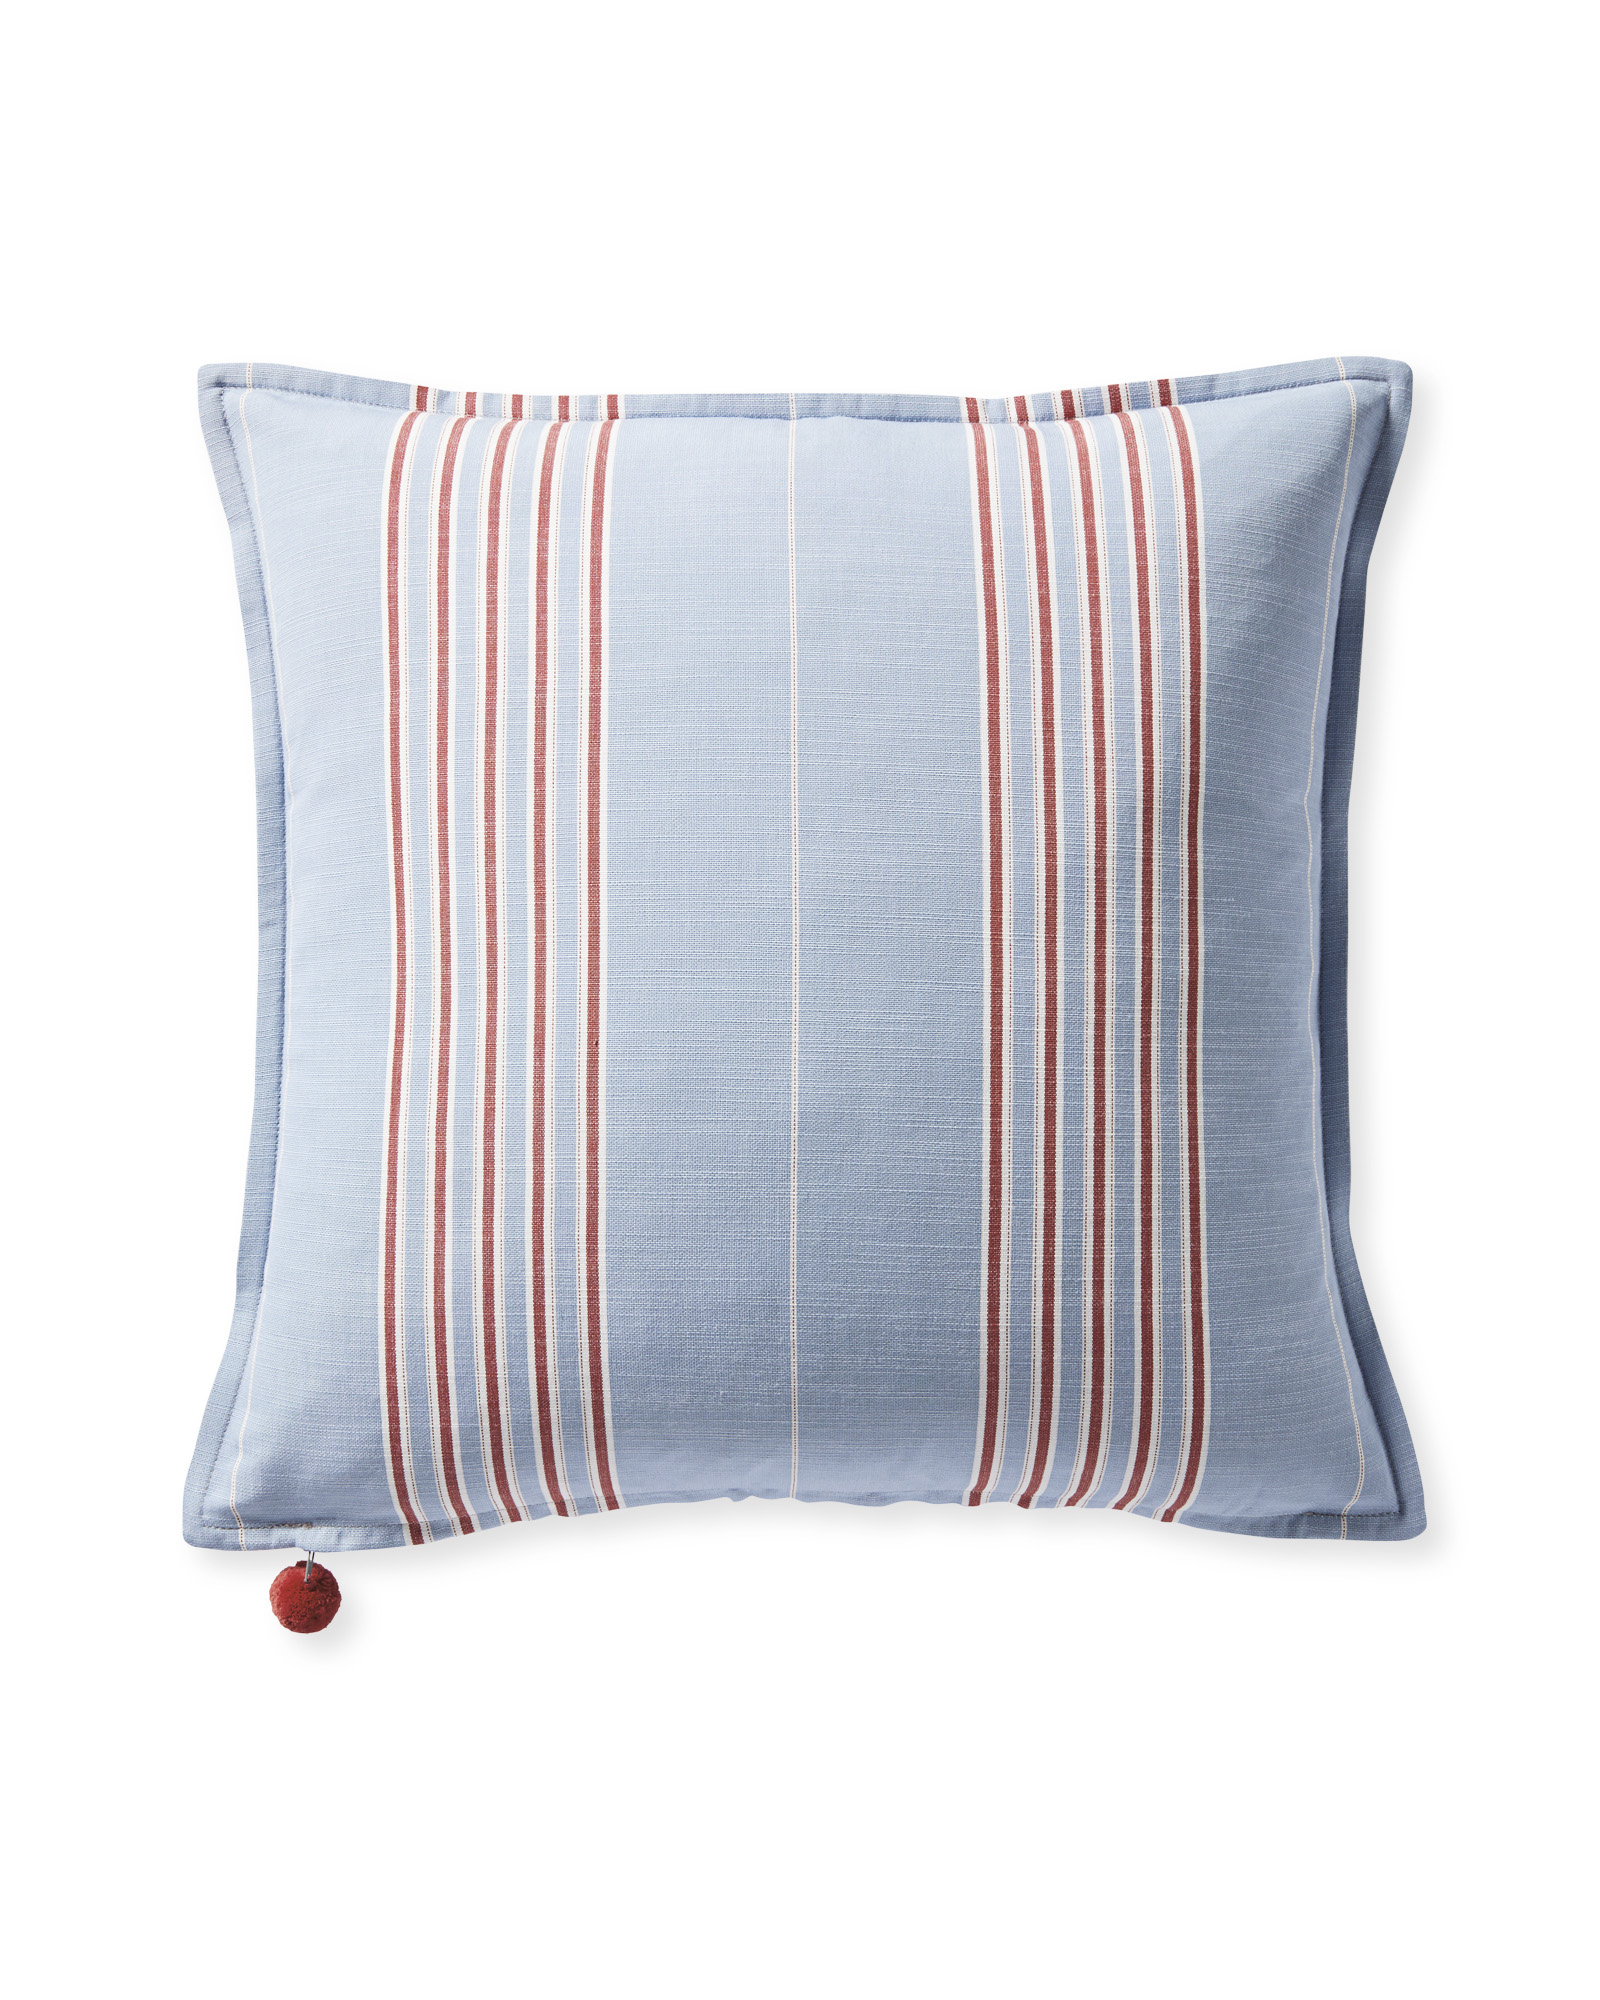 Perennials® Lake Stripe Pillow Cover, Coastal/Poppy